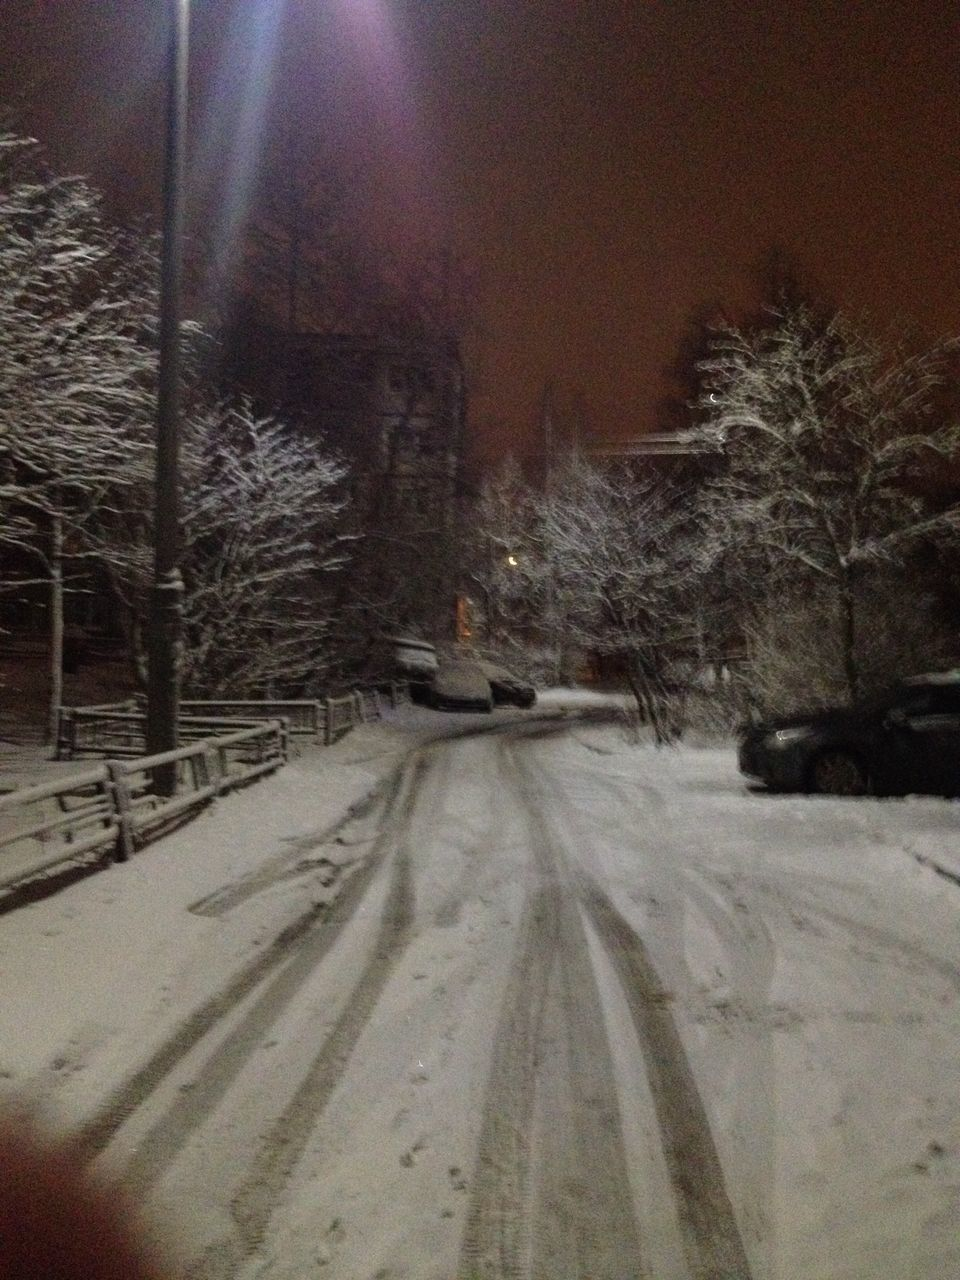 snow, cold temperature, winter, transportation, tree, plant, road, street, night, nature, architecture, no people, covering, city, car, building exterior, tire track, mode of transportation, motor vehicle, outdoors, snowing